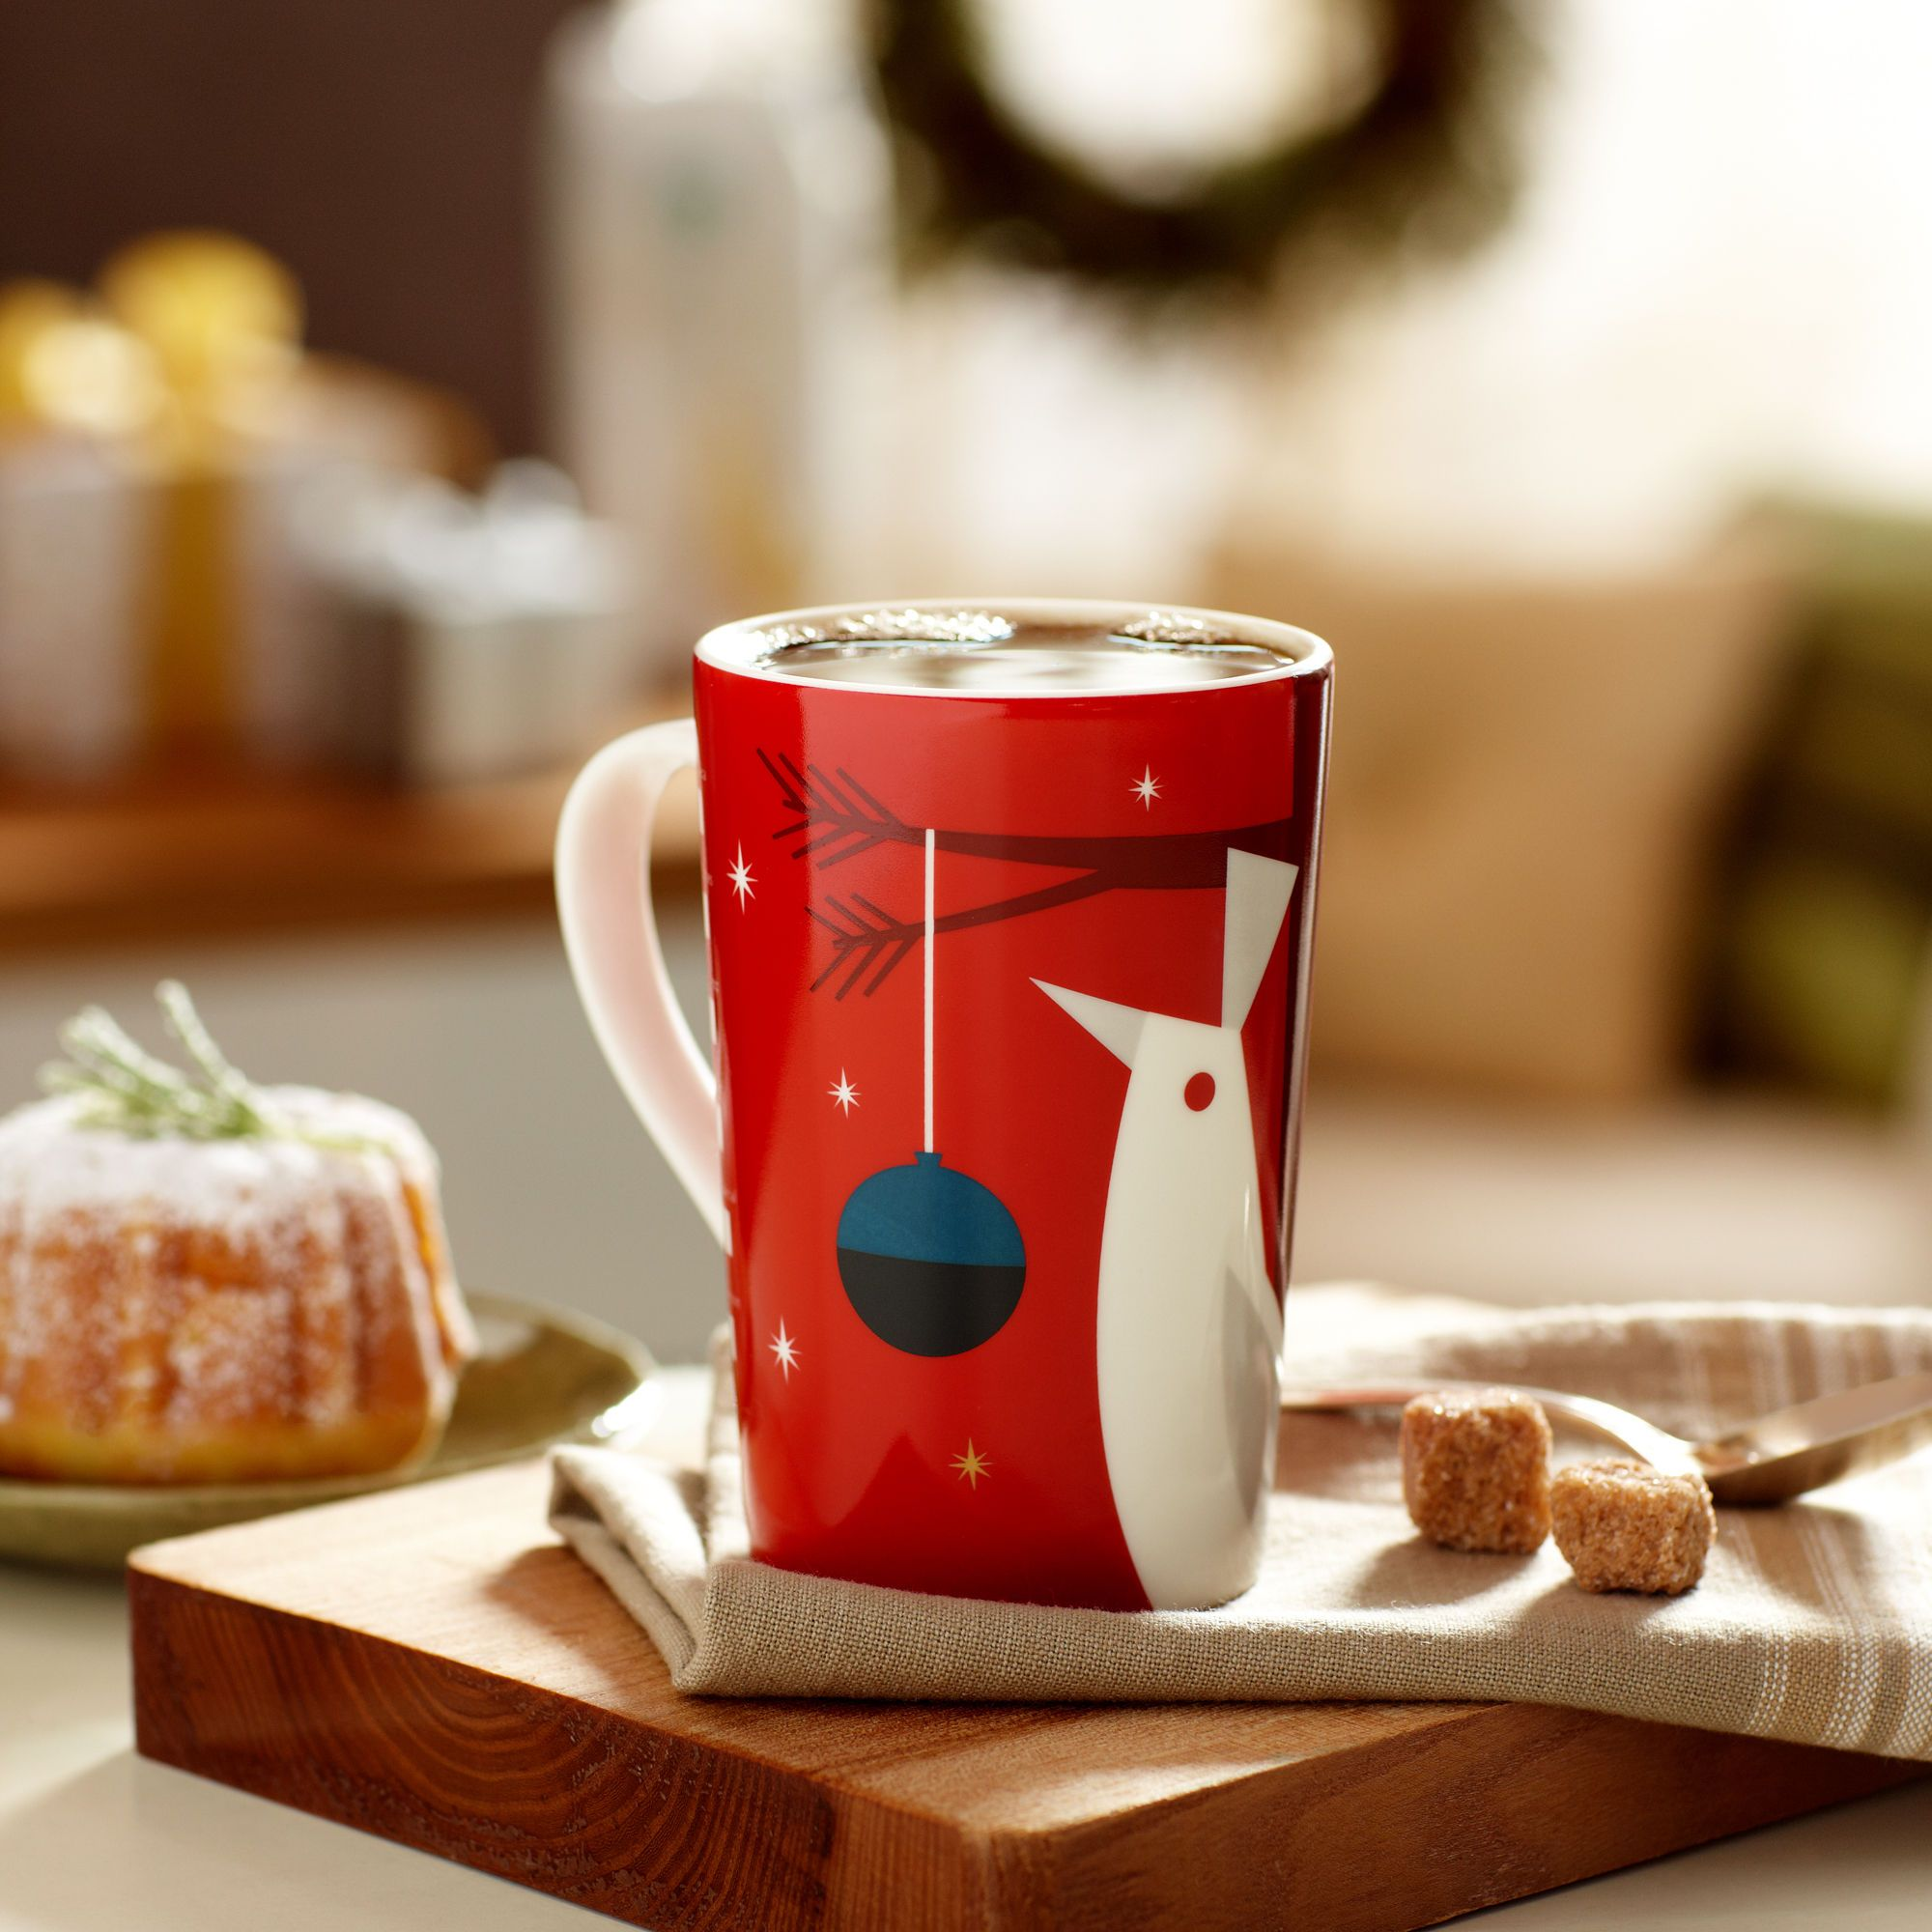 Nothing says Fall is here quite like Starbucks Holiday Red